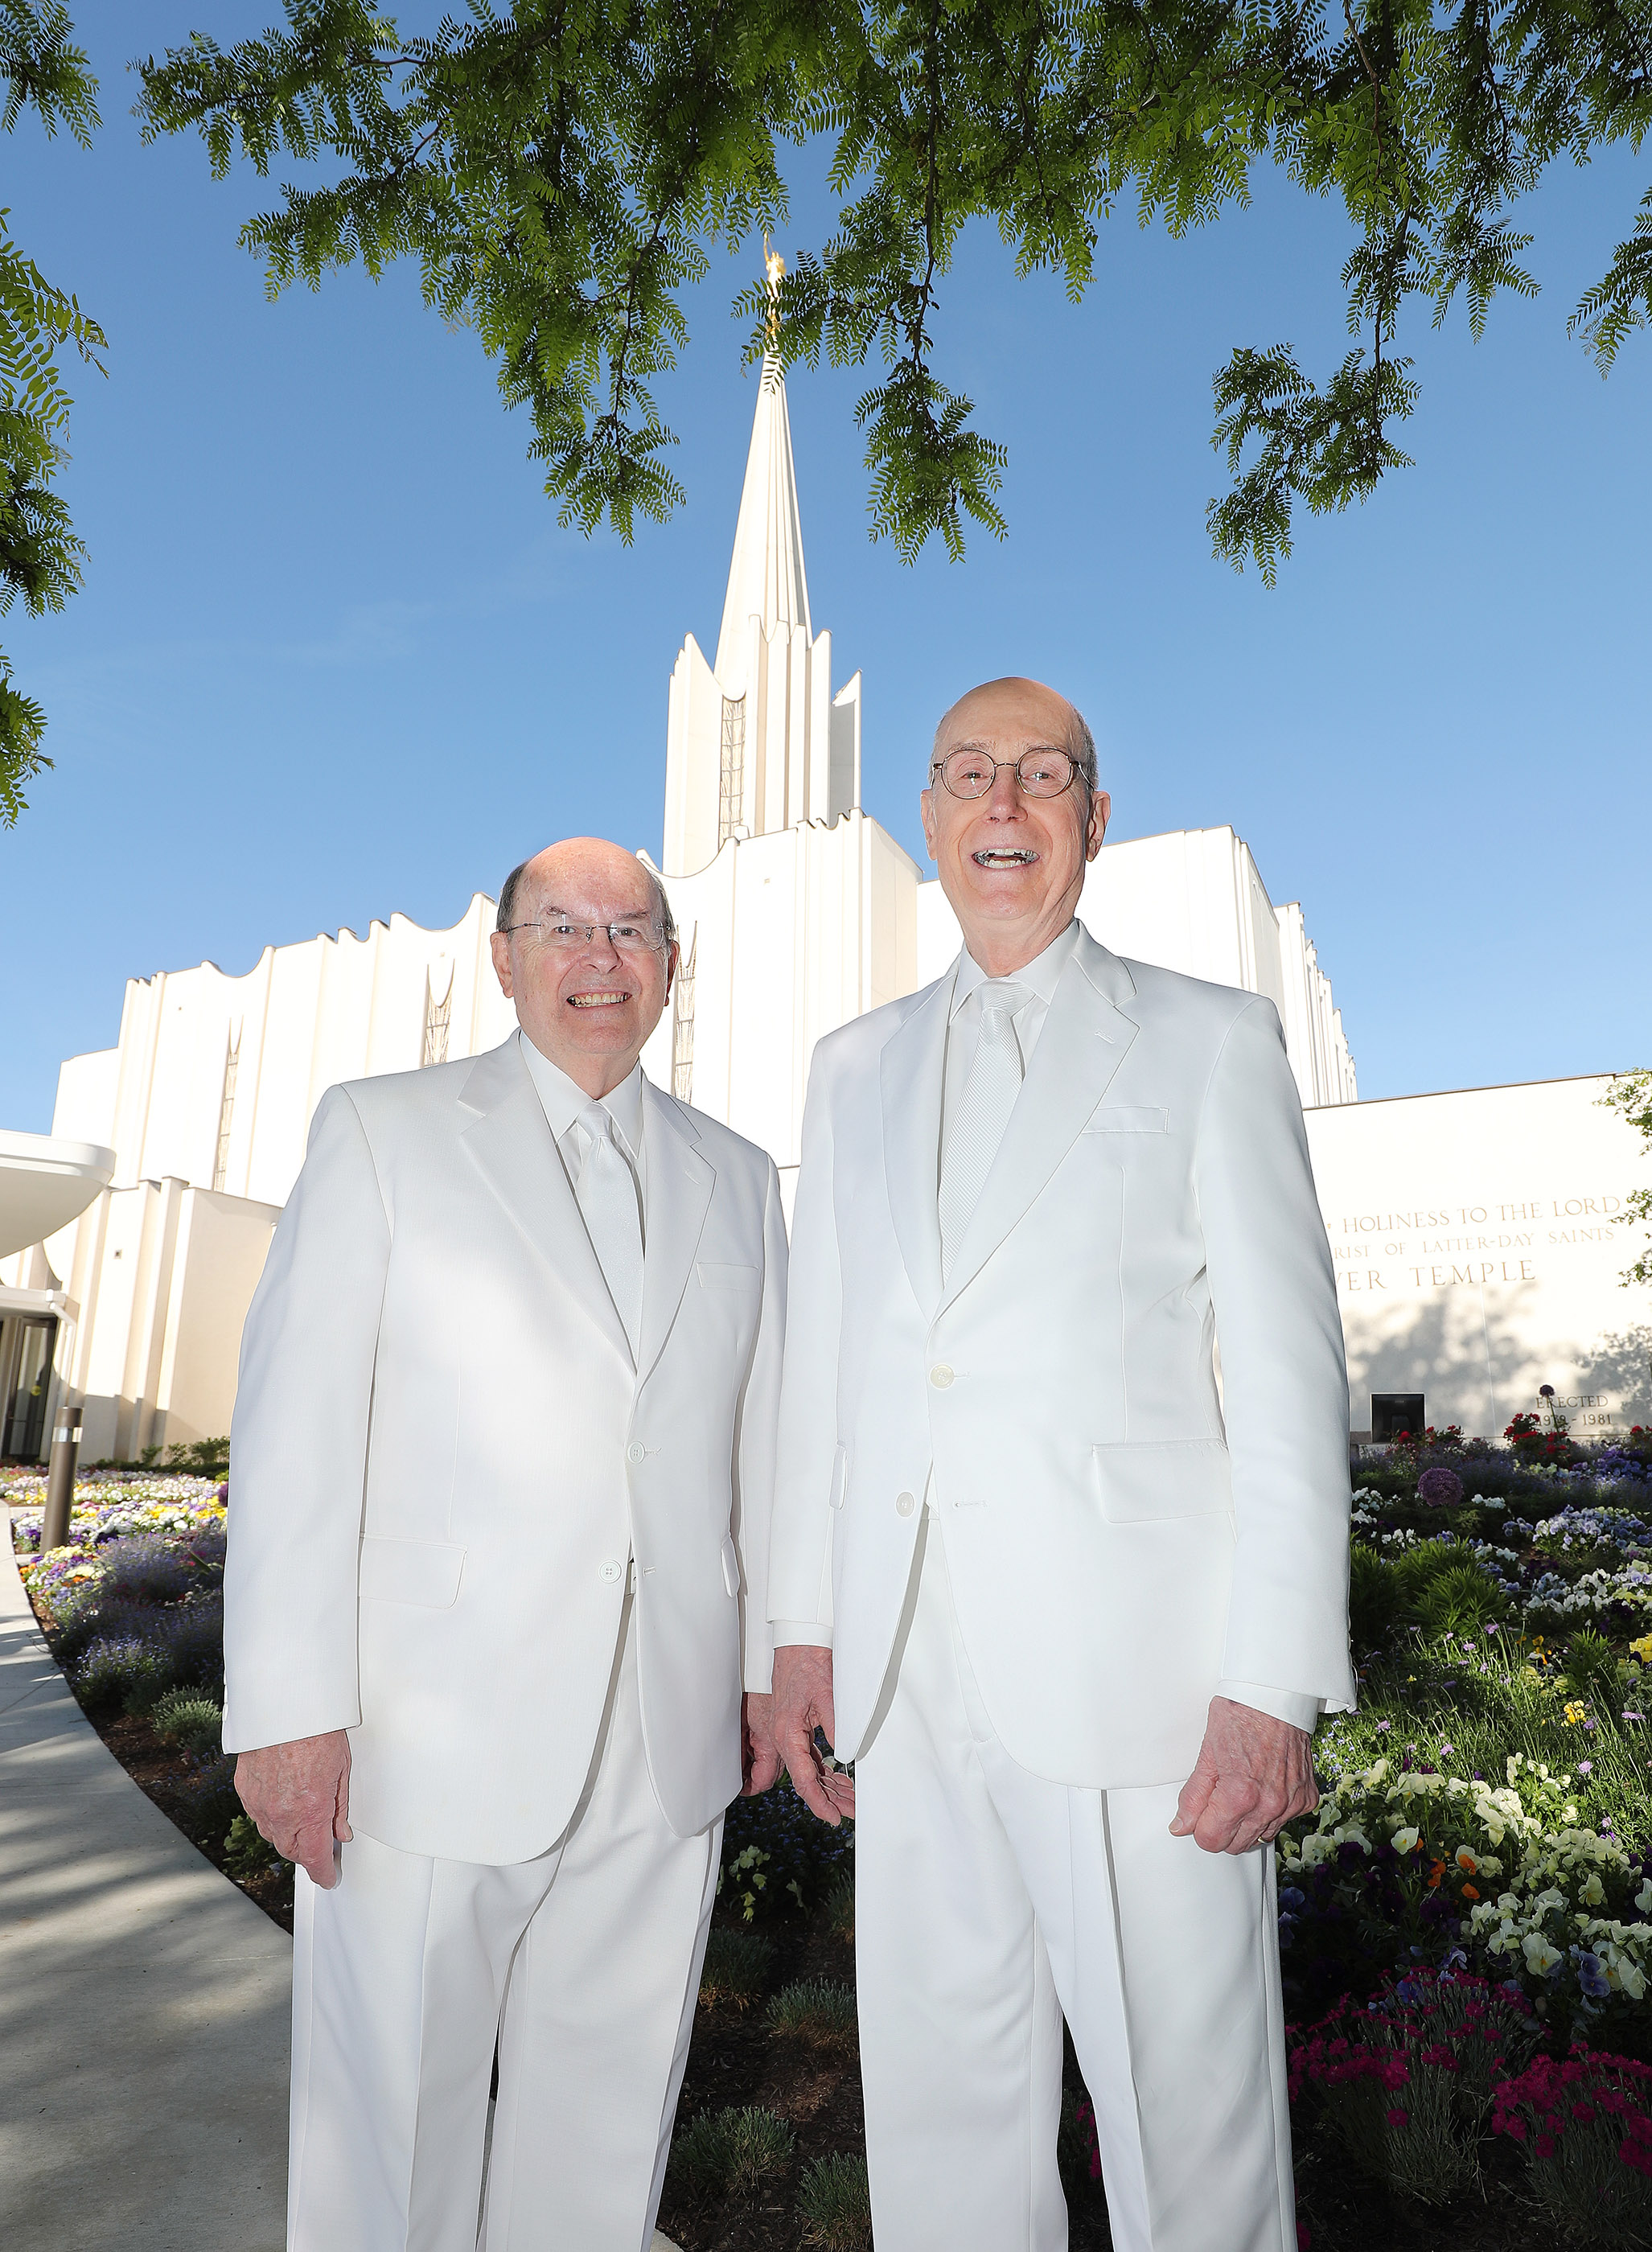 President Henry B. Eyring, second counselor in the First Presidency, right, and Elder Quentin L. Cook of the Quorum of the Twelve Apostles, left, pose outside the Jordan River Utah Temple prior to rededication in South Jordan on Sunday, May 20, 2018.